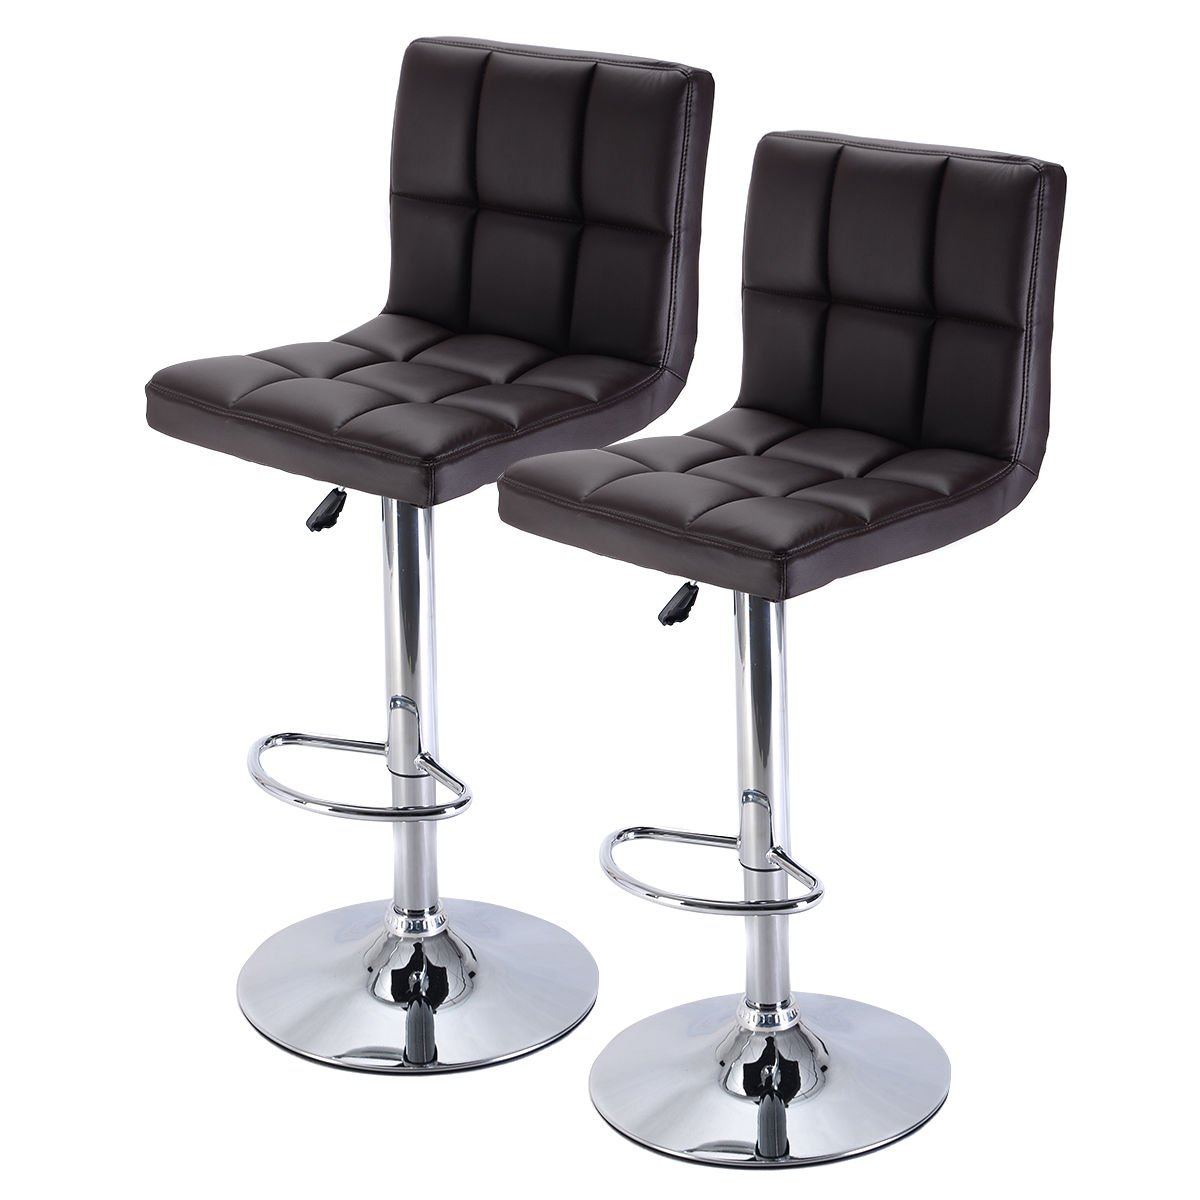 Amazon.com Costway Furniture Swivel PU Leather Barstools Chair Adjustable Hydraulic Counter Bar Stool Set of 2 (Brown) Kitchen u0026 Dining  sc 1 st  Amazon.com & Amazon.com: Costway Furniture Swivel PU Leather Barstools Chair ... islam-shia.org